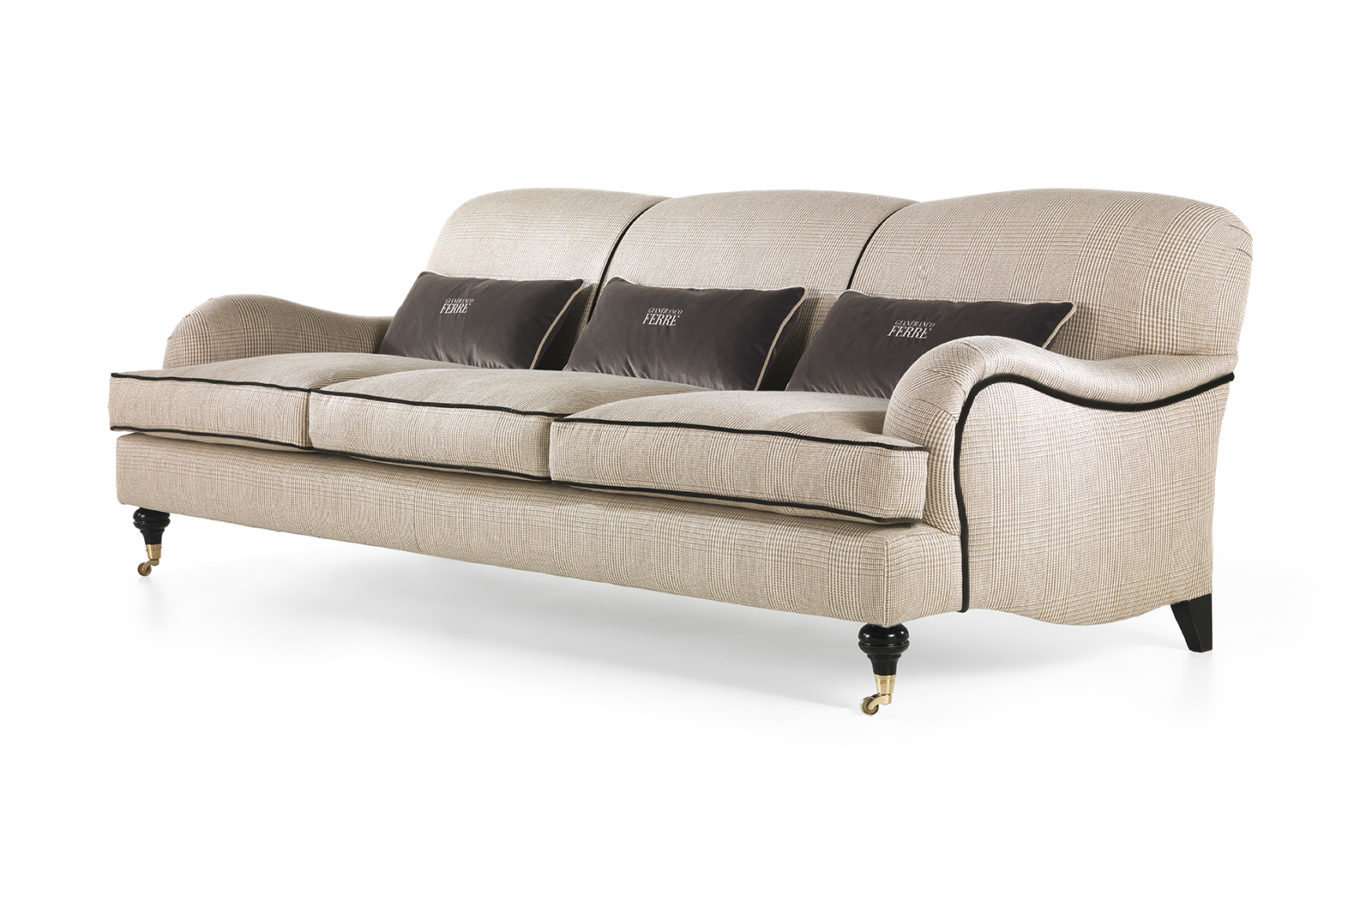 Gianfranco Ferre Home London Sofa